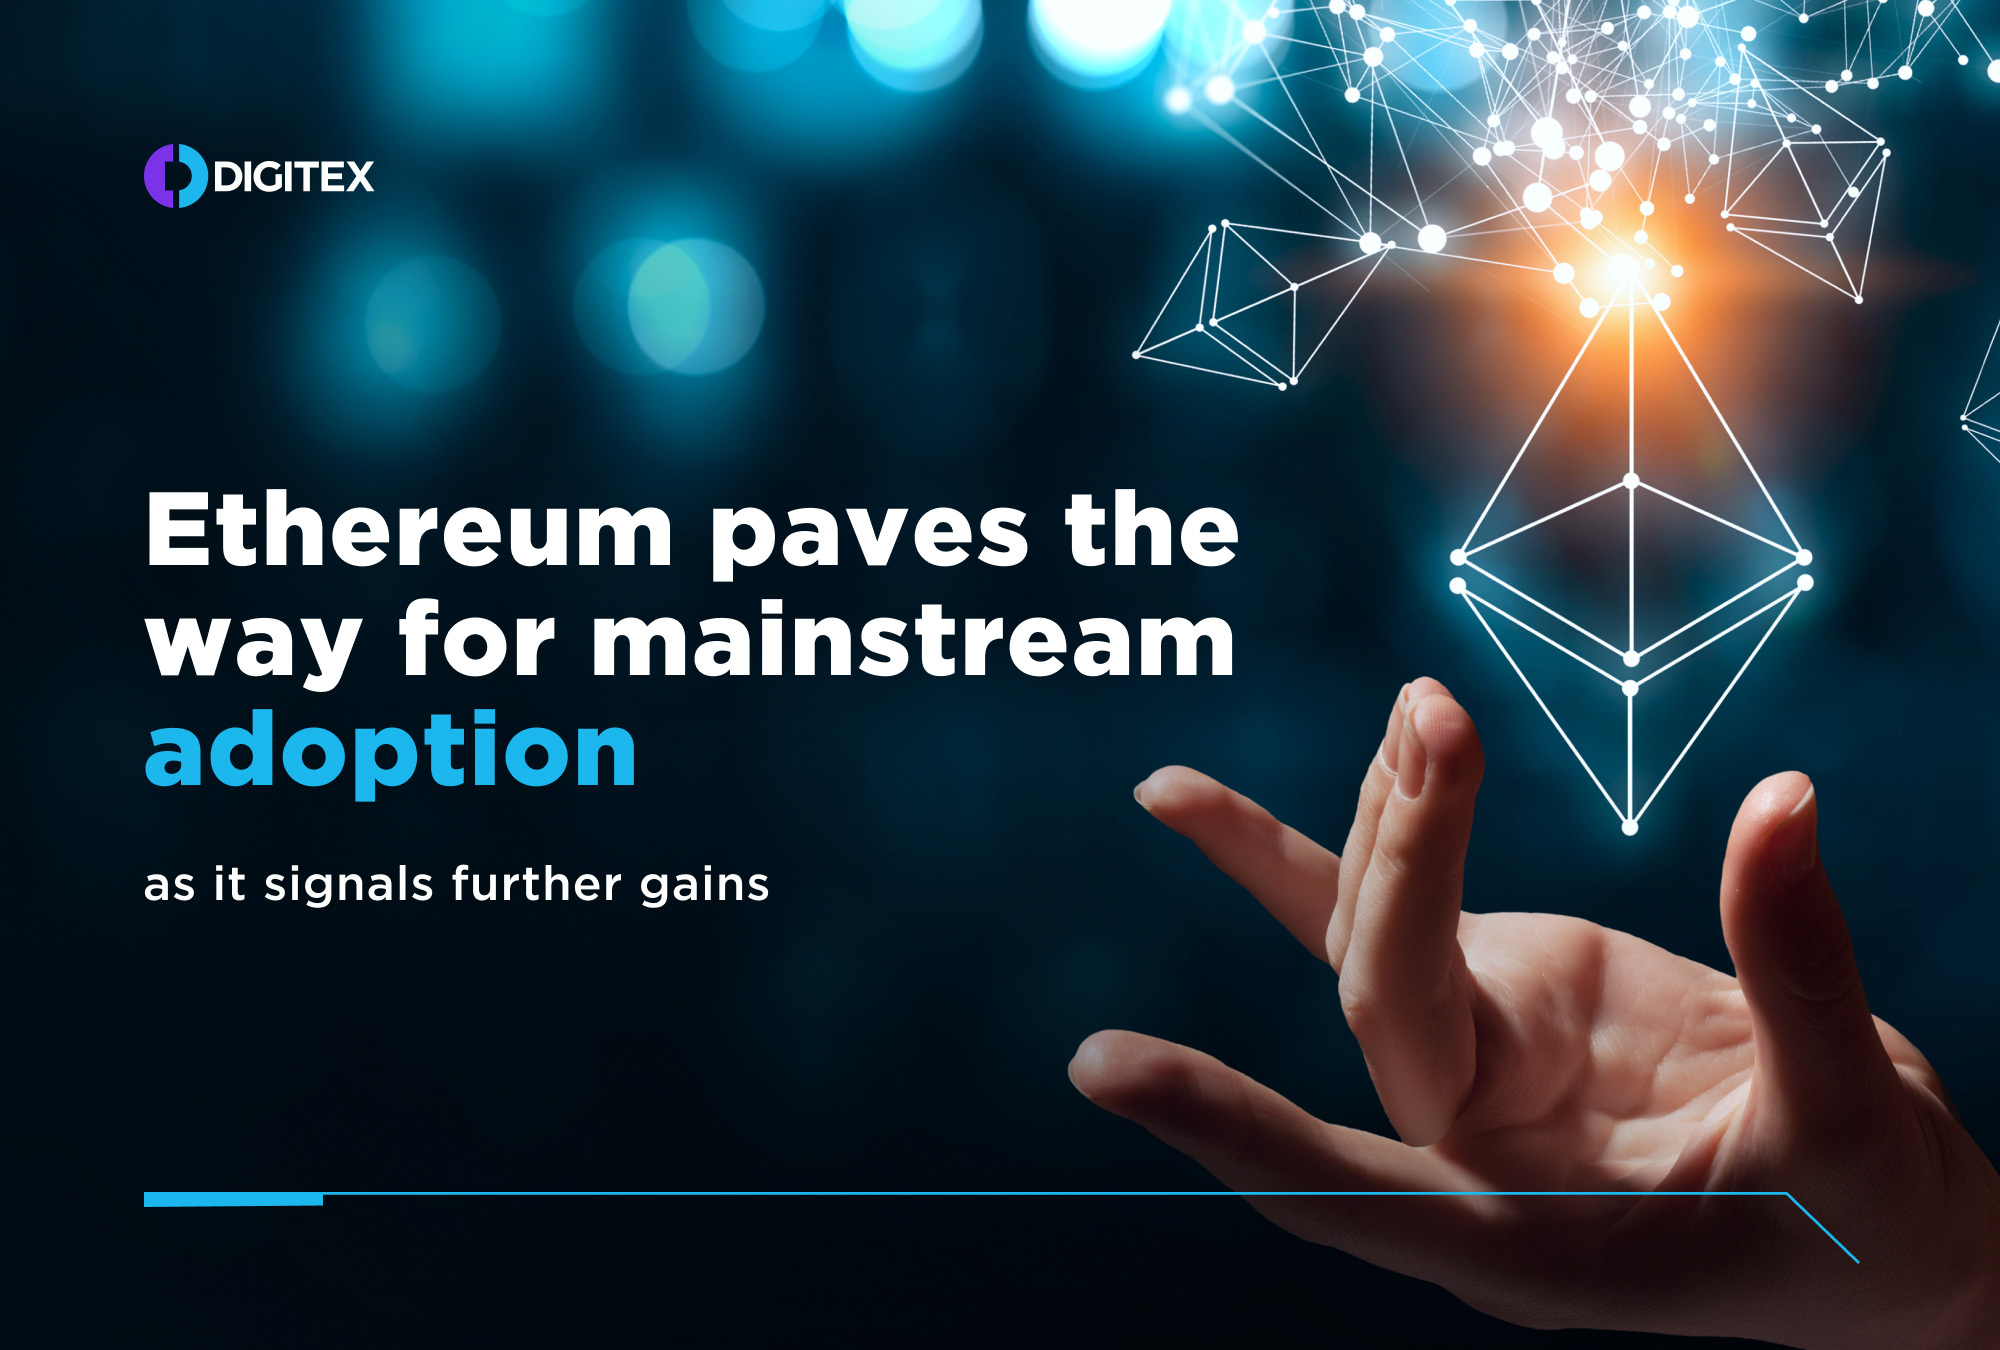 Ethereum Paves the Way For Mainstream Adoption as It Signals Further Gains 47